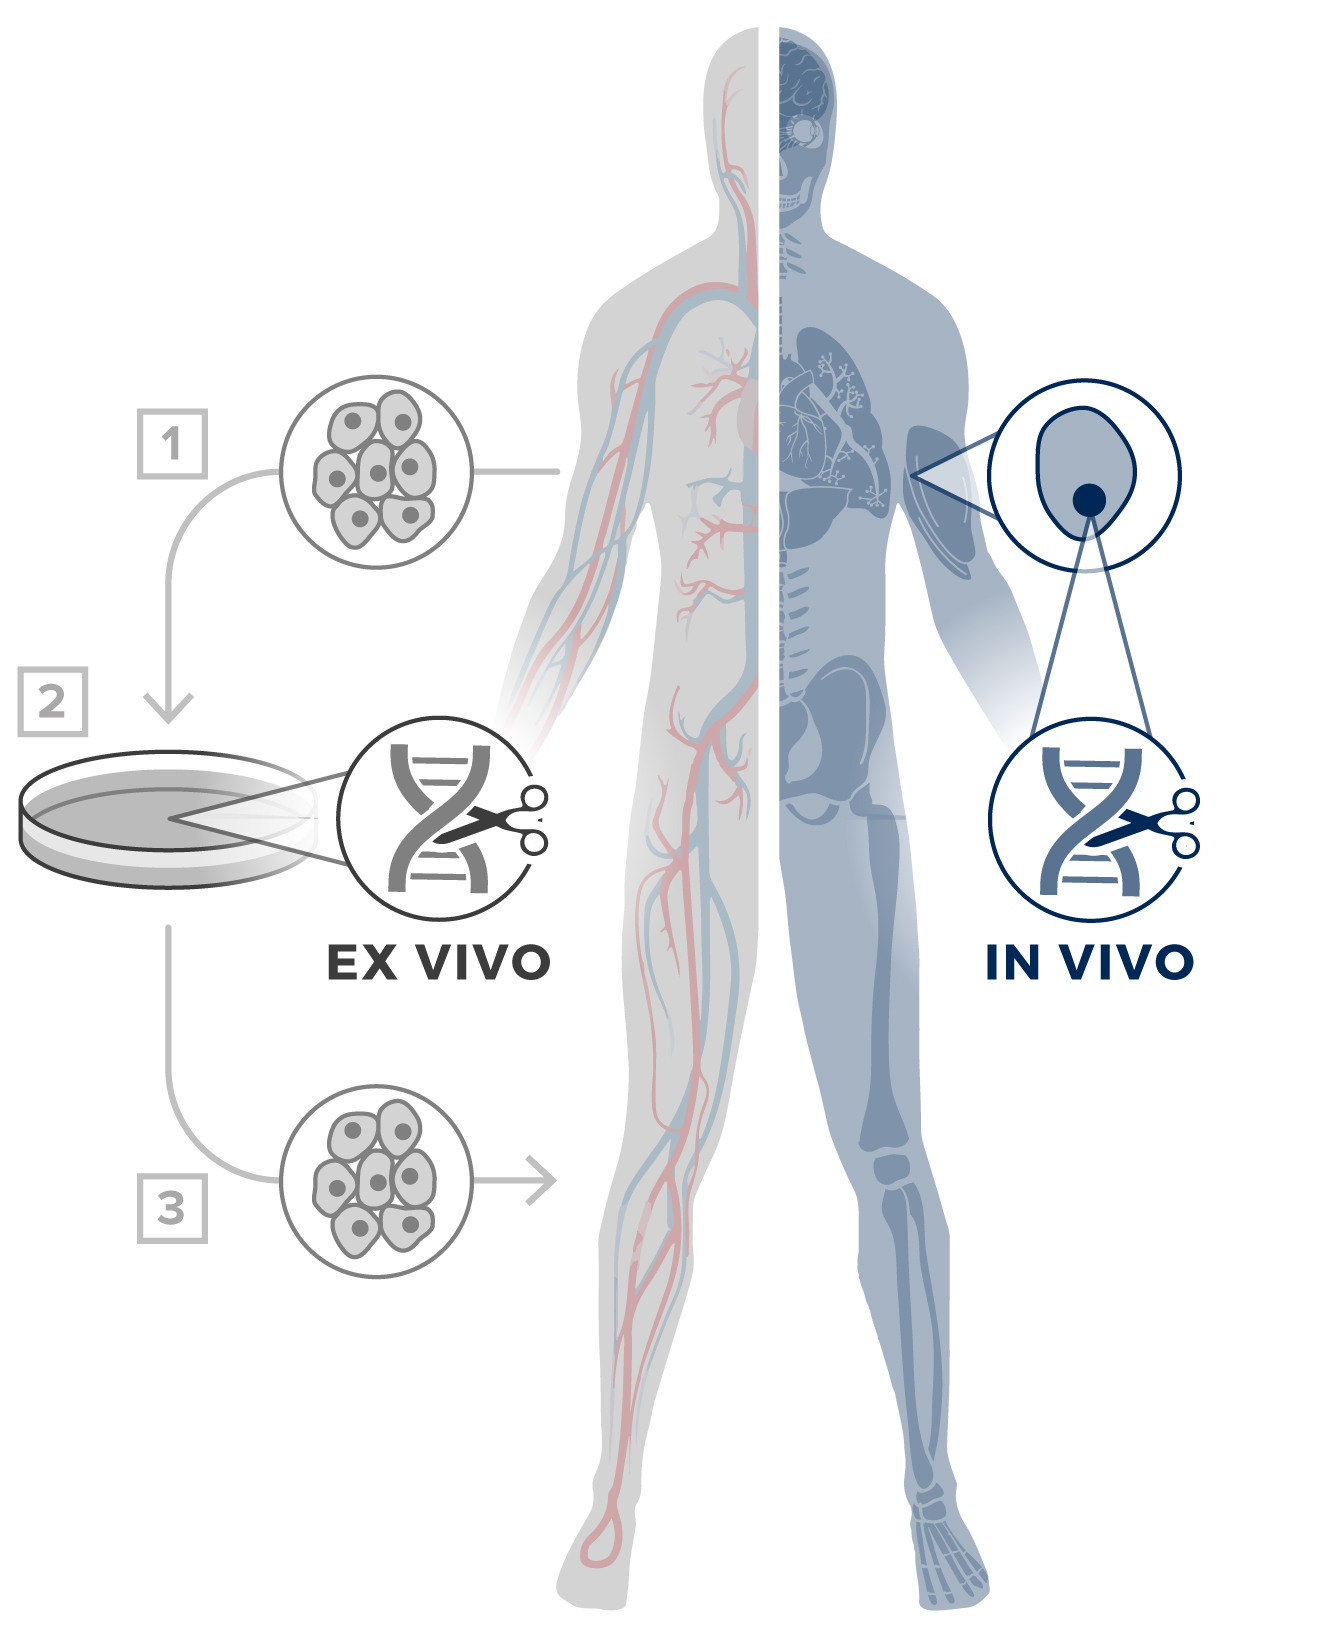 The key to CRISPR's therapeutic potential is in vivo delivery via an adeno-associated virus (AAV).